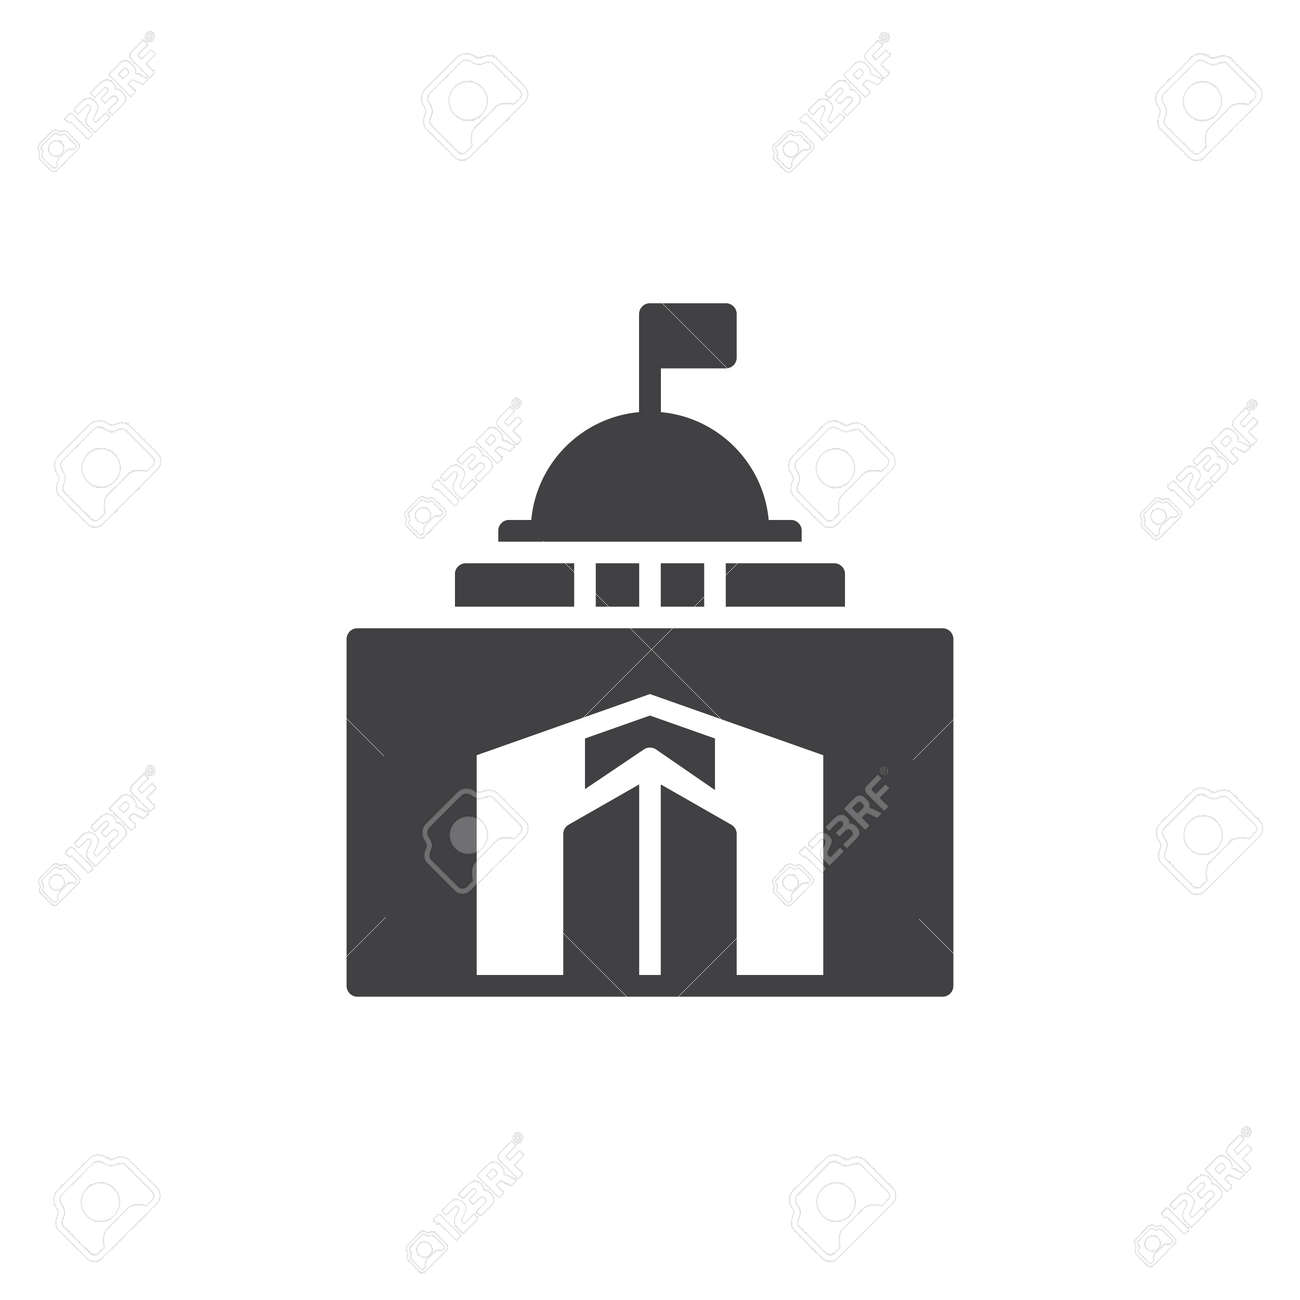 City hall building icon vector filled flat sign solid pictogram city hall building icon vector filled flat sign solid pictogram isolated on white biocorpaavc Image collections